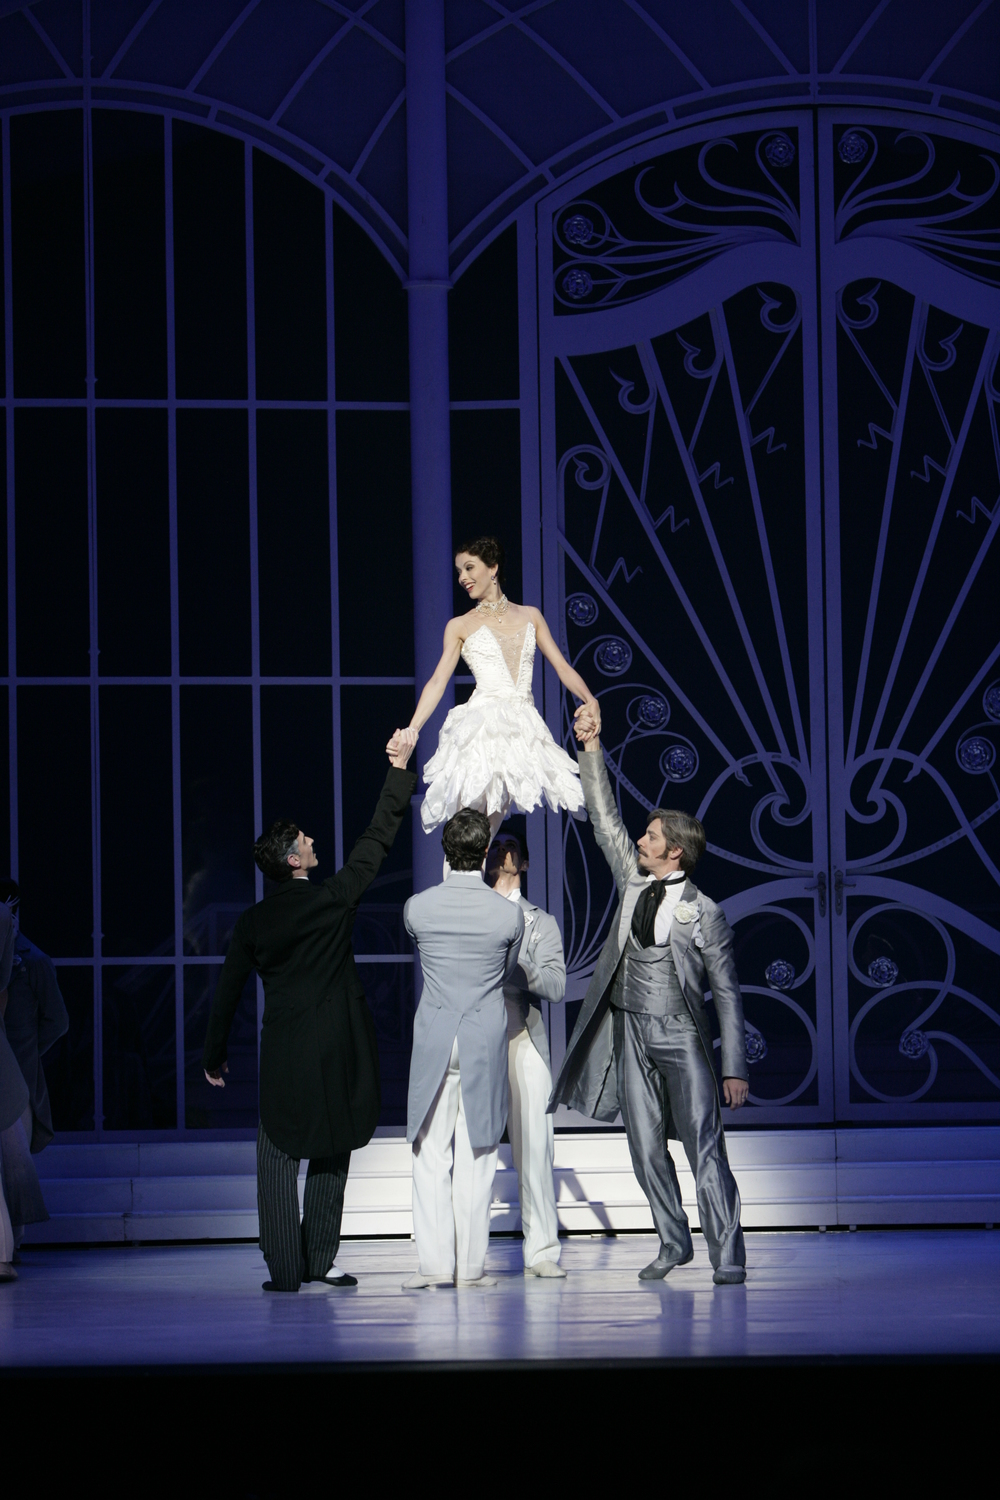 Juliet Burnett as Sophie with artists of The Australian Ballet in Graeme Murphy's The Silver Rose